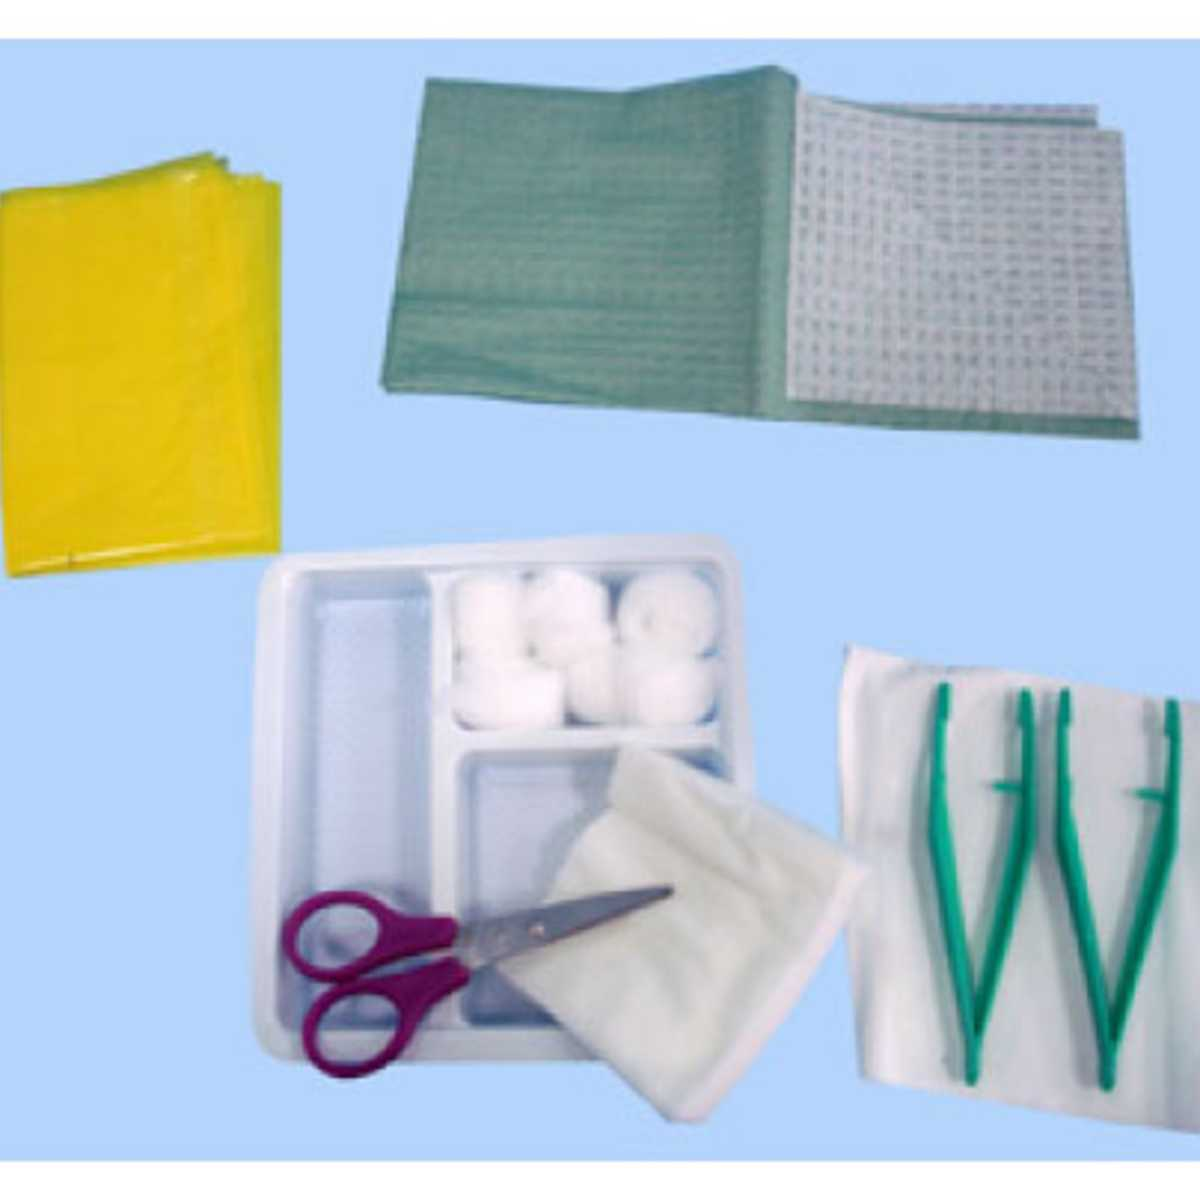 Dressing Change Tray - Sterile, Disposable